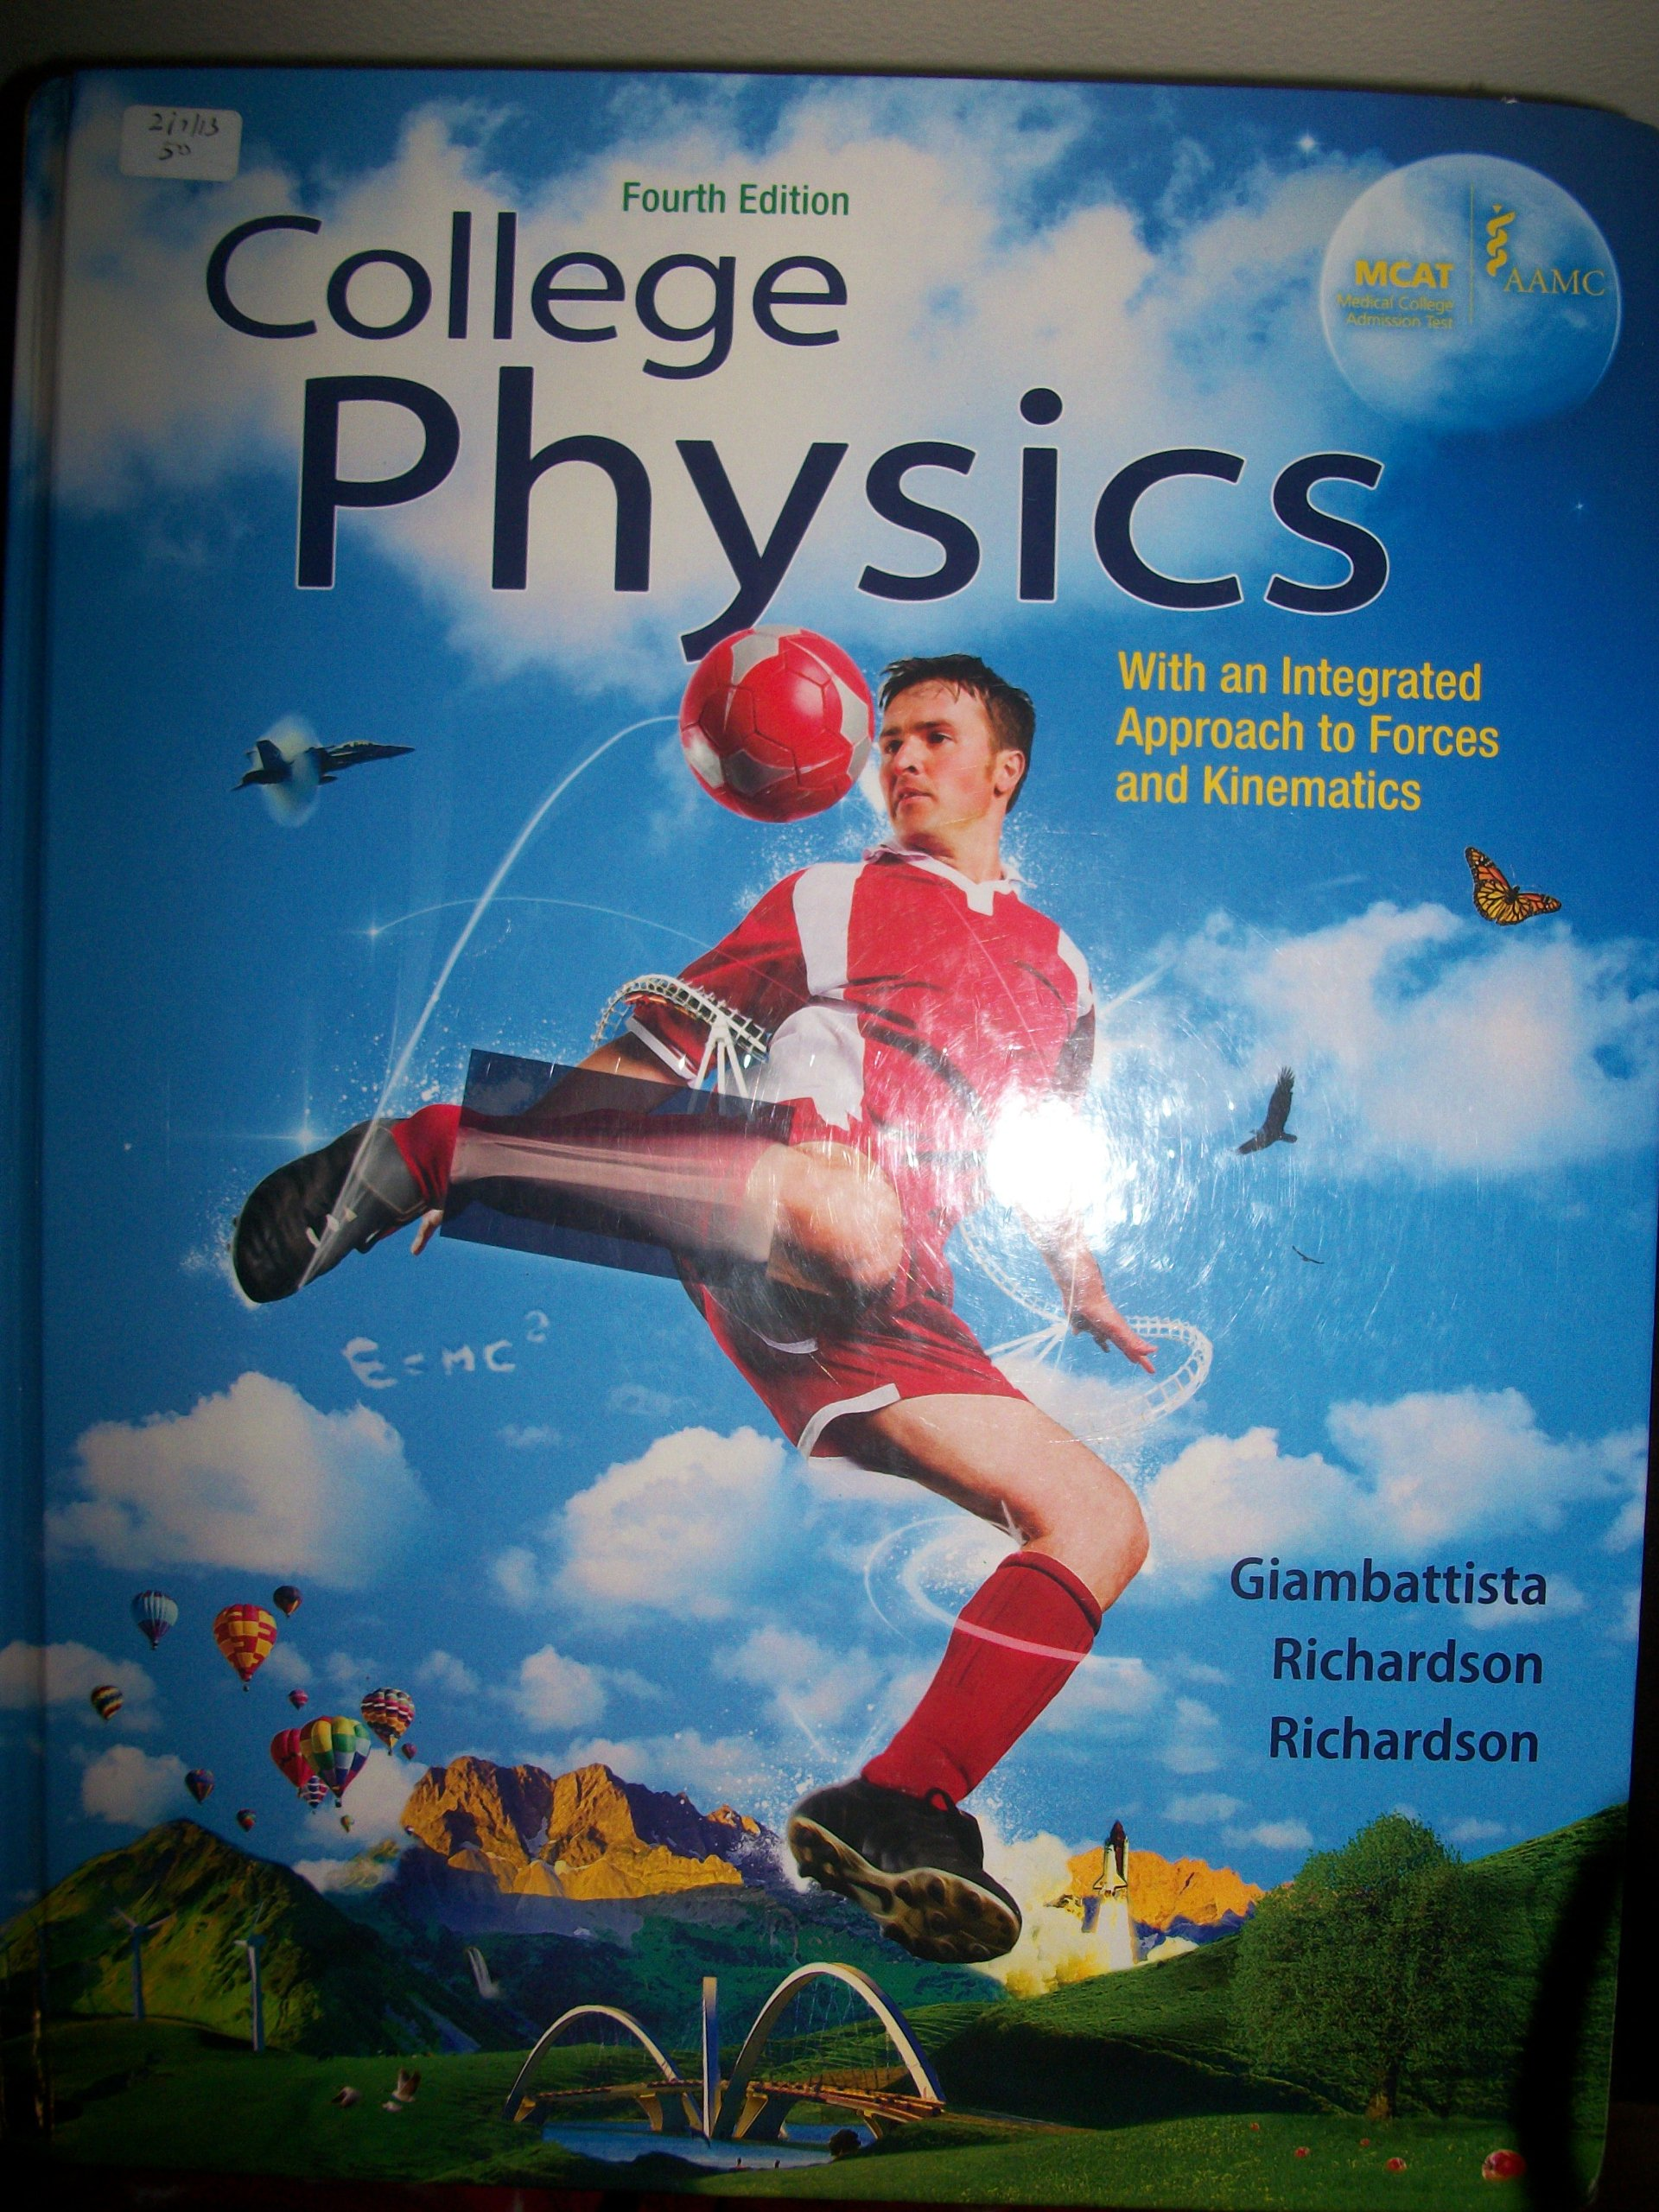 College Physics:With an Integrated Approach to Forces and Kinematics,  Fourth Edition: Richardson, Richardson Giambattista: 9780073512143:  Amazon.com: Books